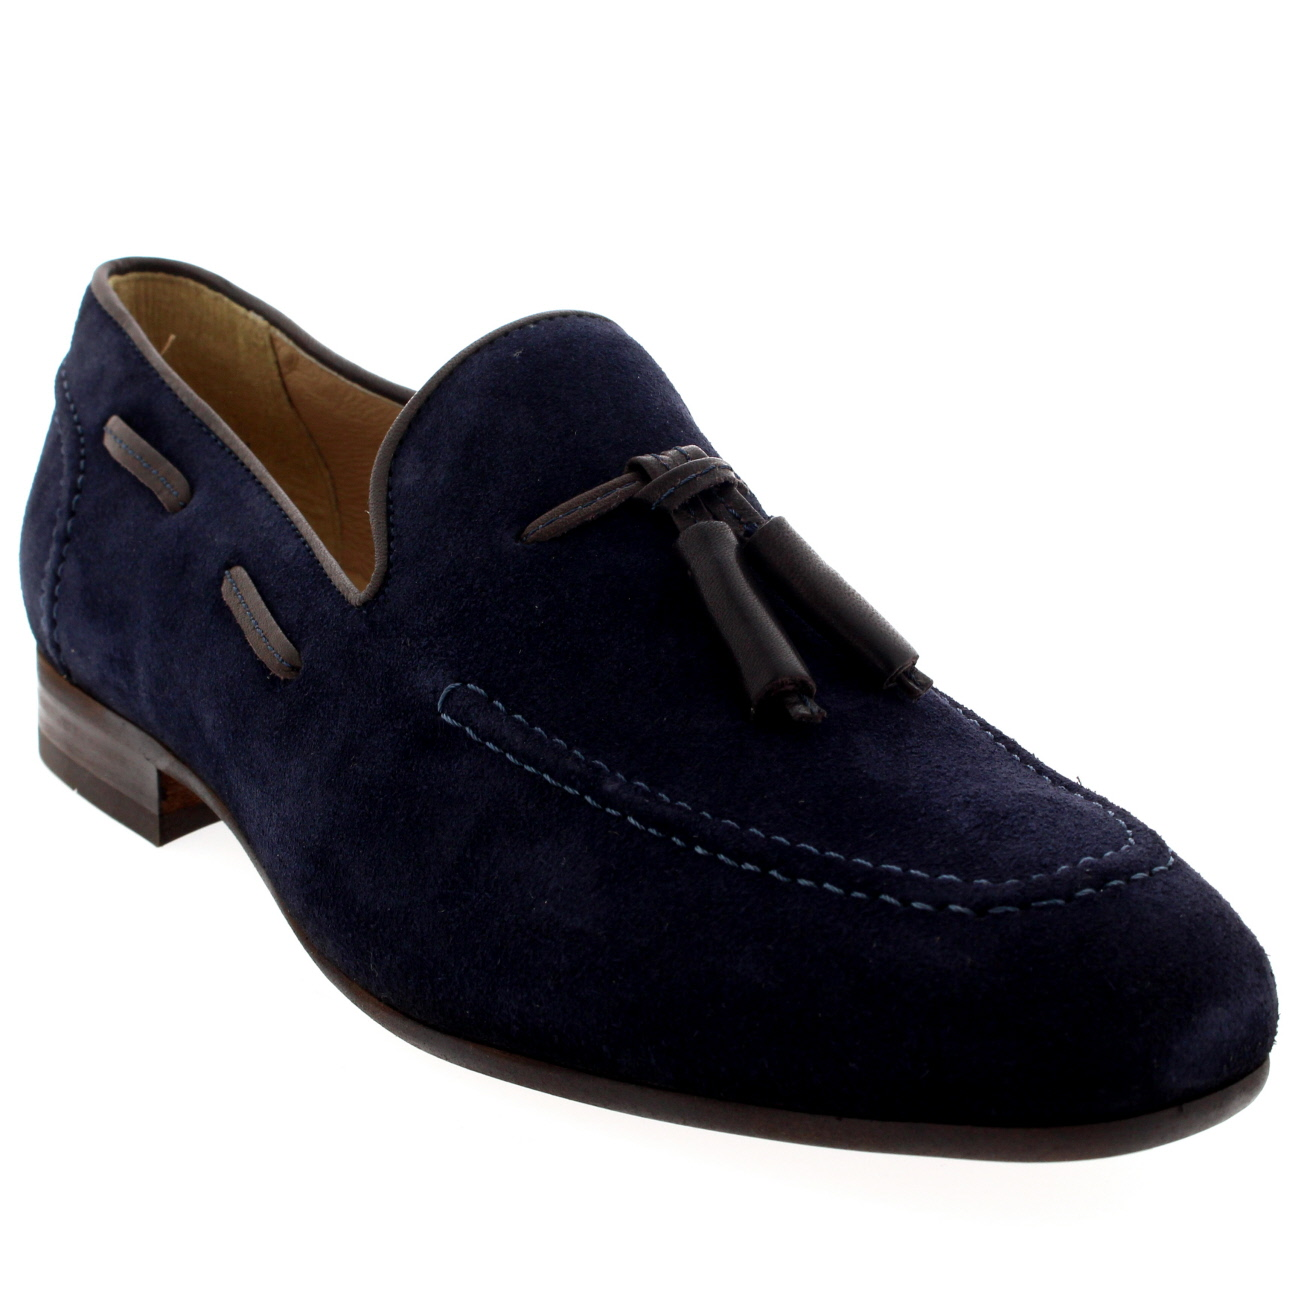 mens h by hudson suede formal office work loafers